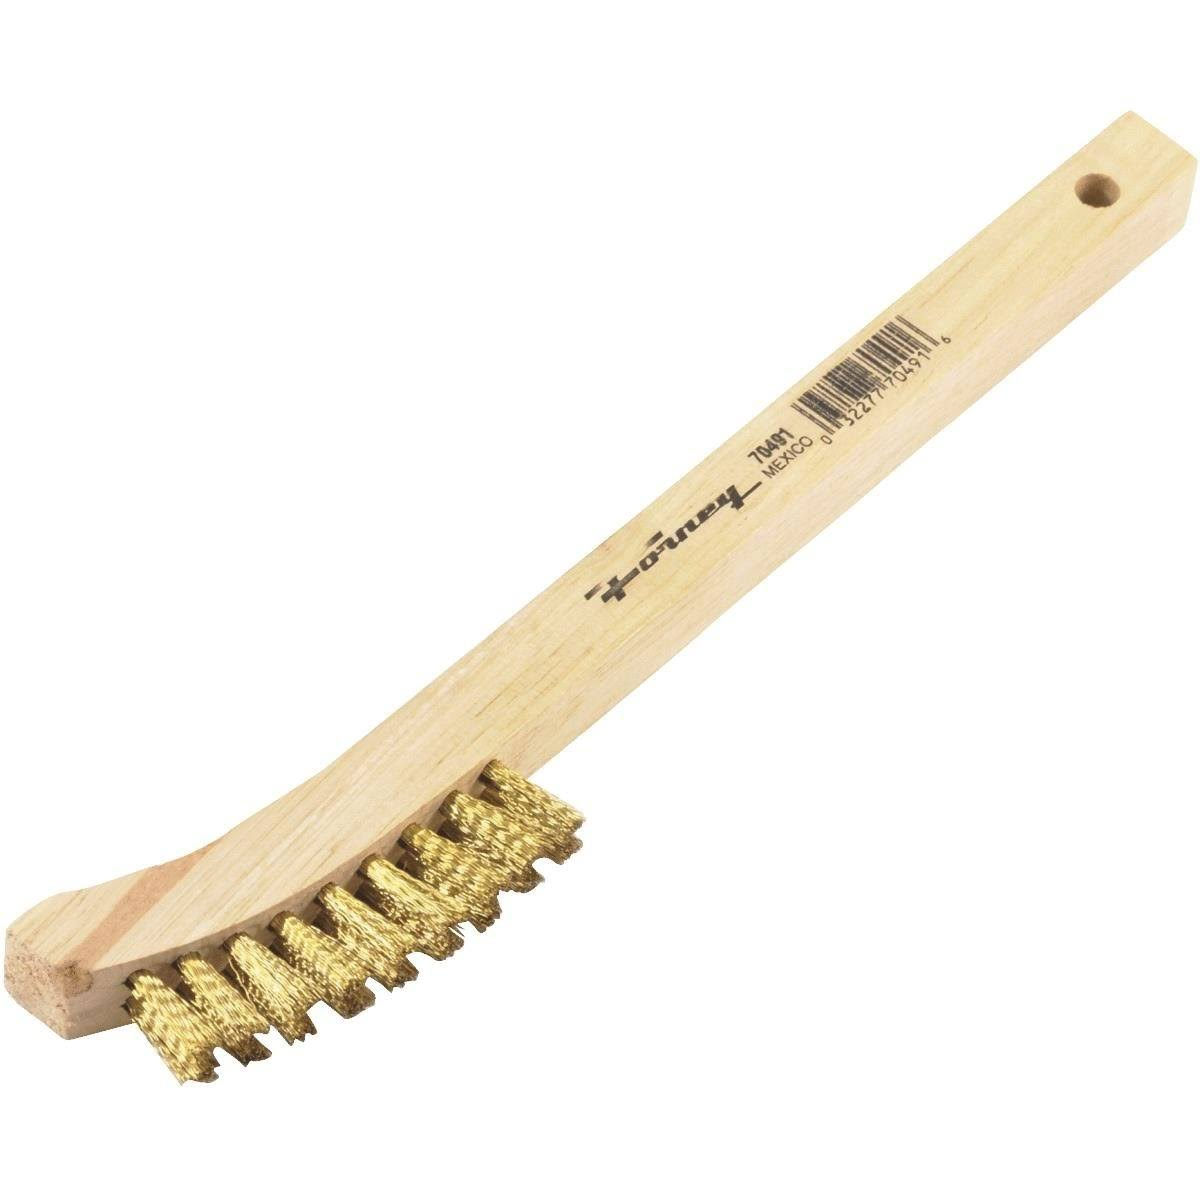 Forney Curved Wood Handled Brass Wire Scratch Brush - 8 5/8""